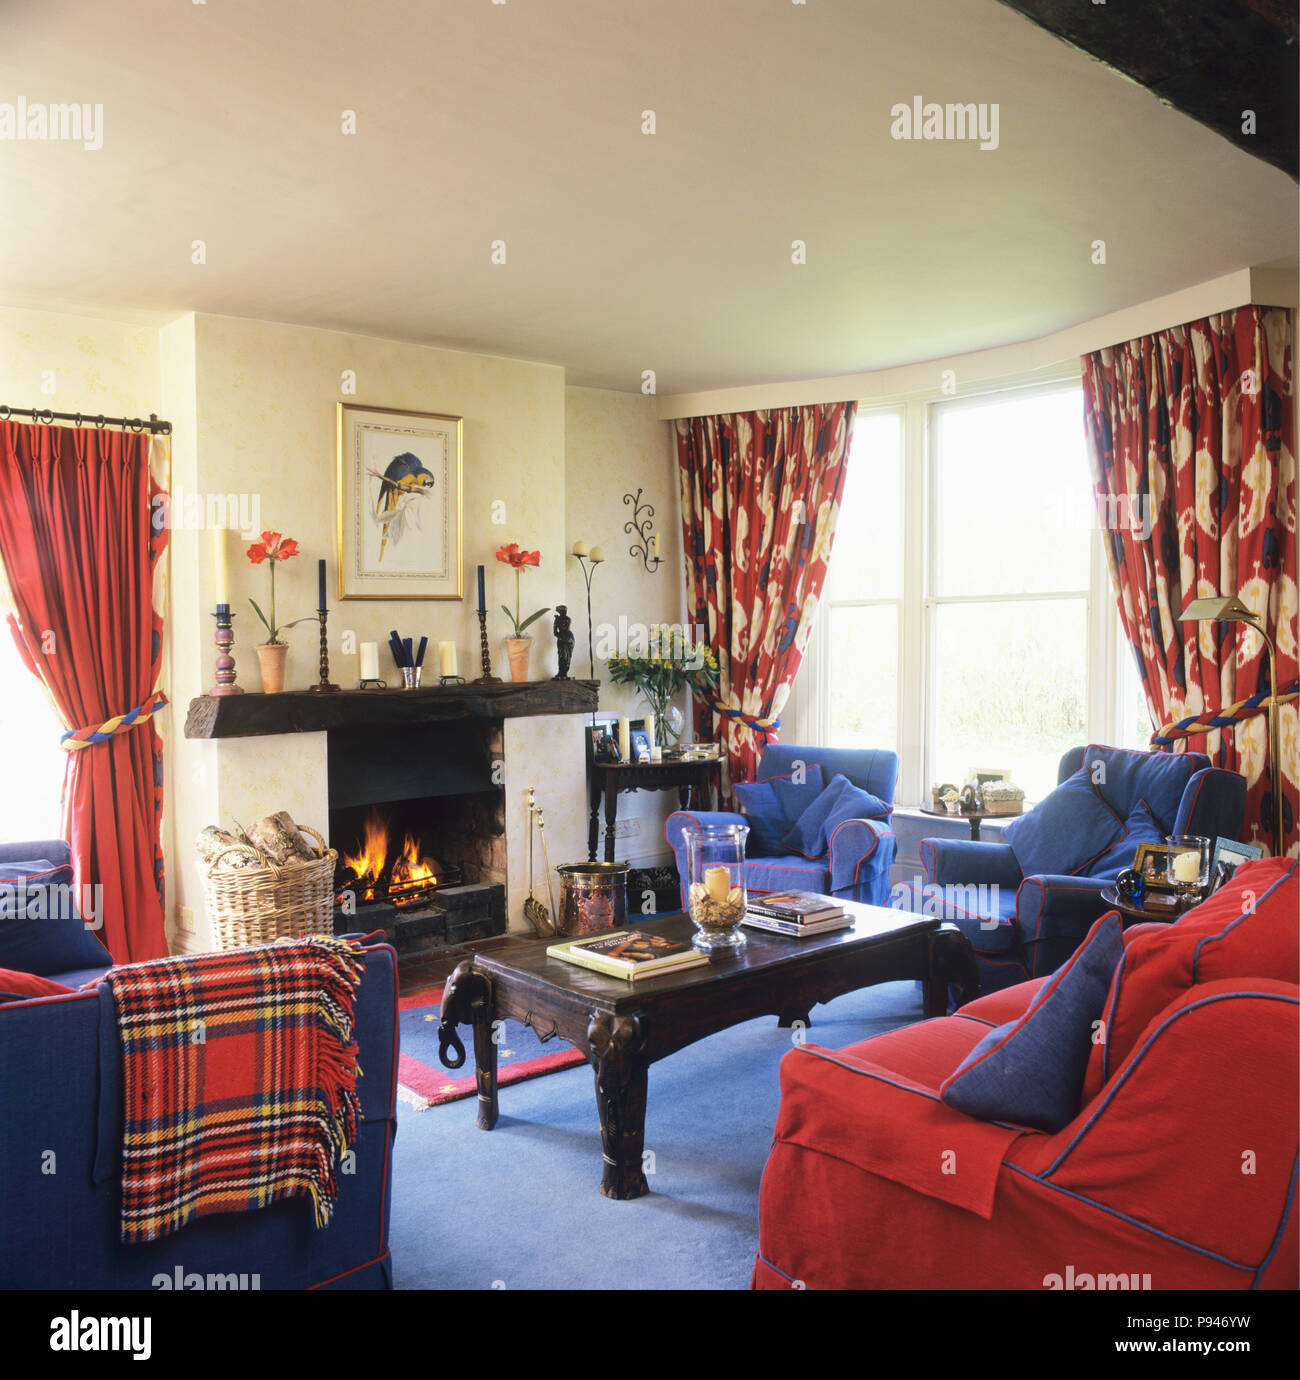 Red Sofa And Blue Armchairs In Traditional Living Room Stock Photo Alamy